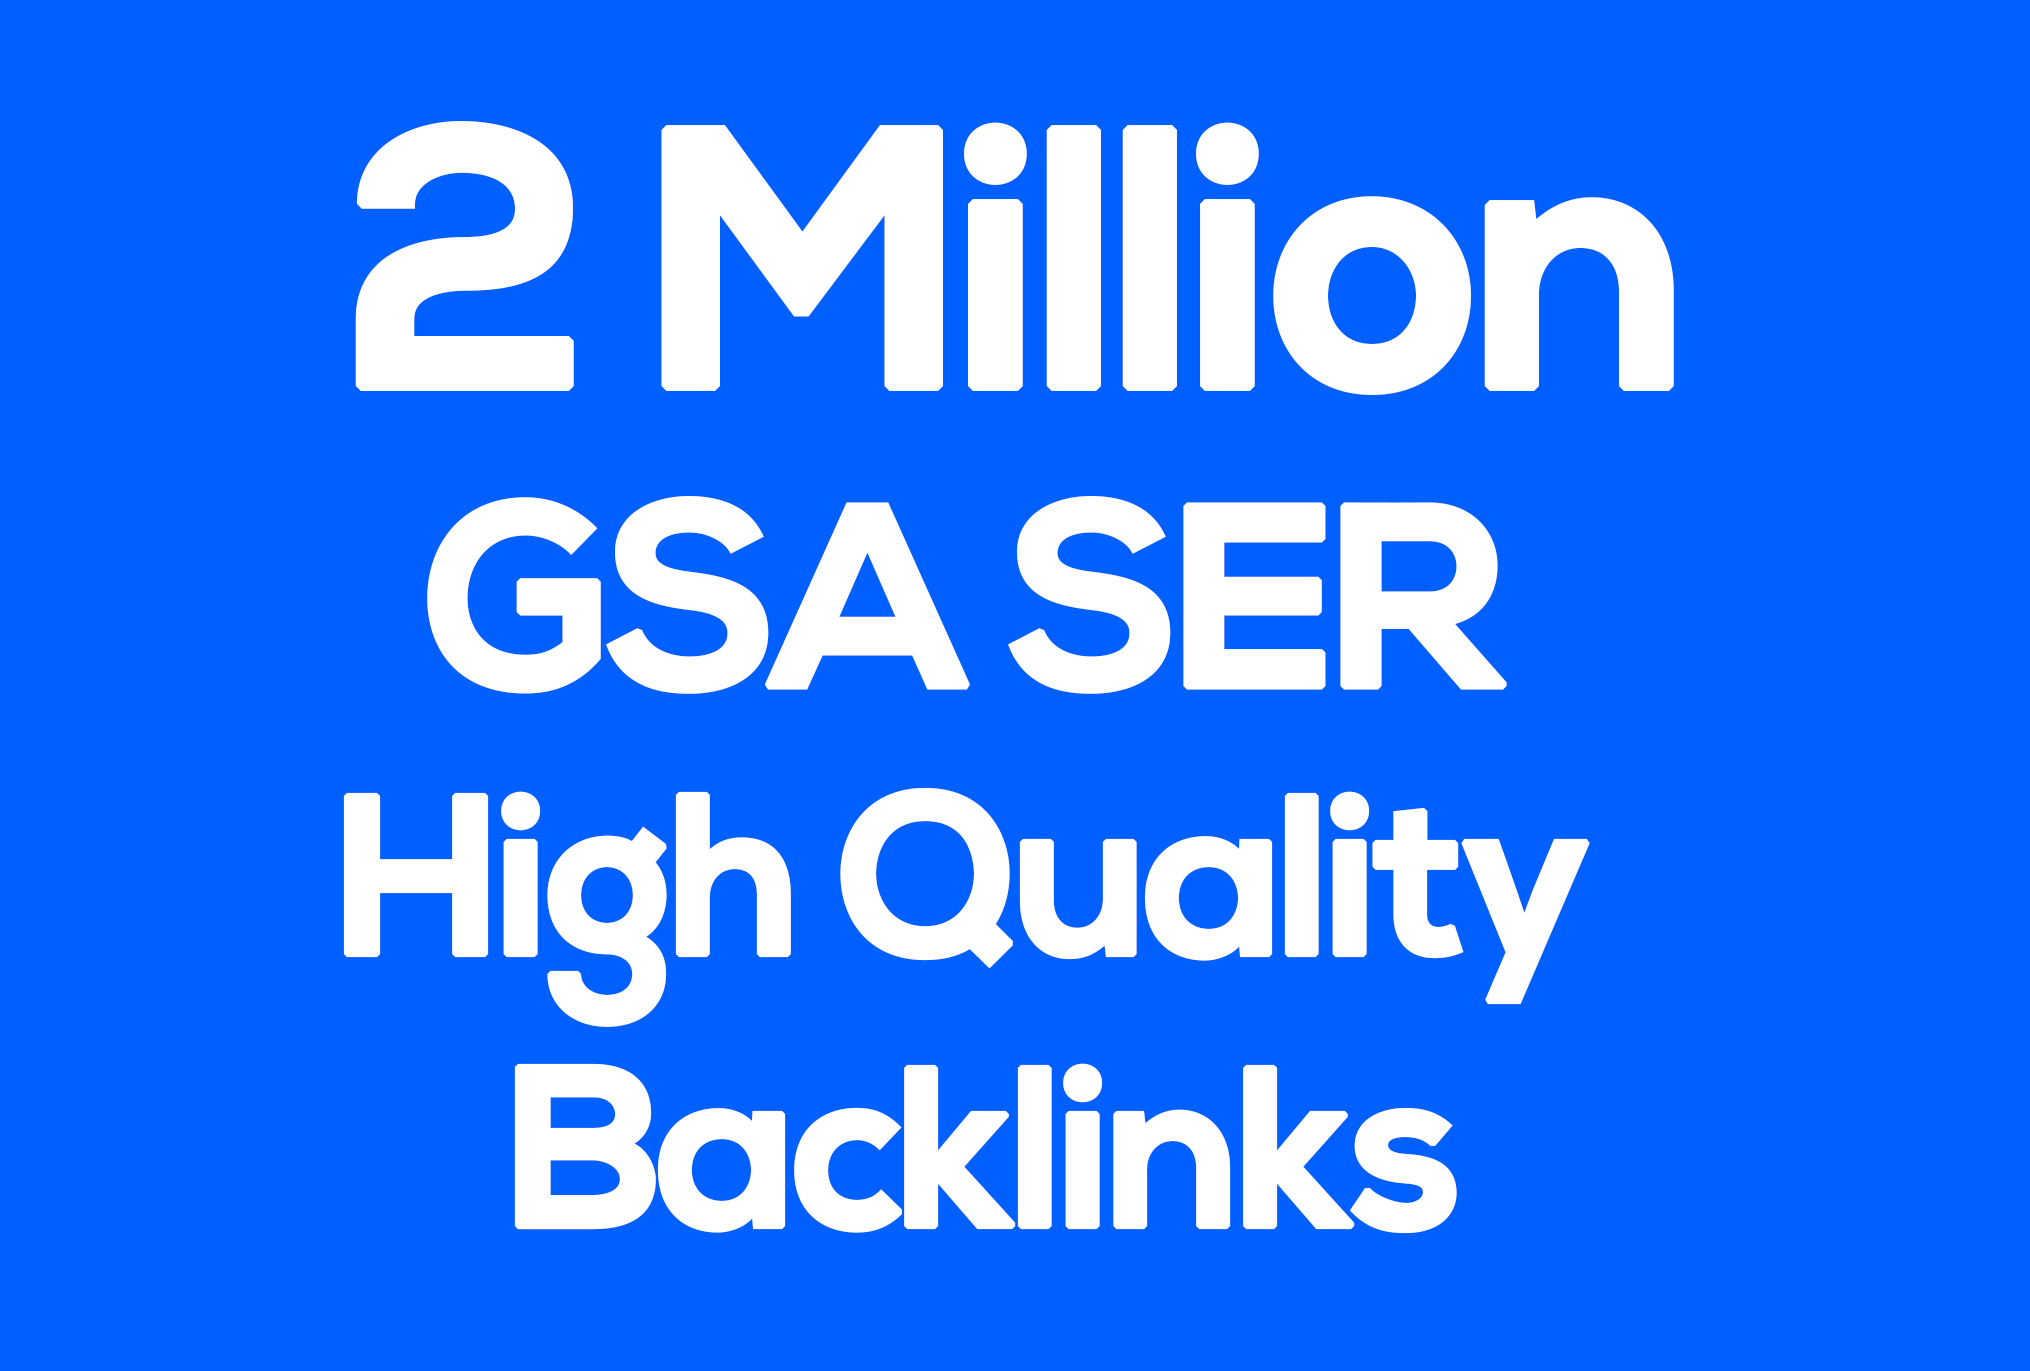 2 million High Quality GSA SER Backlinks for Multi-Tiered link Building for